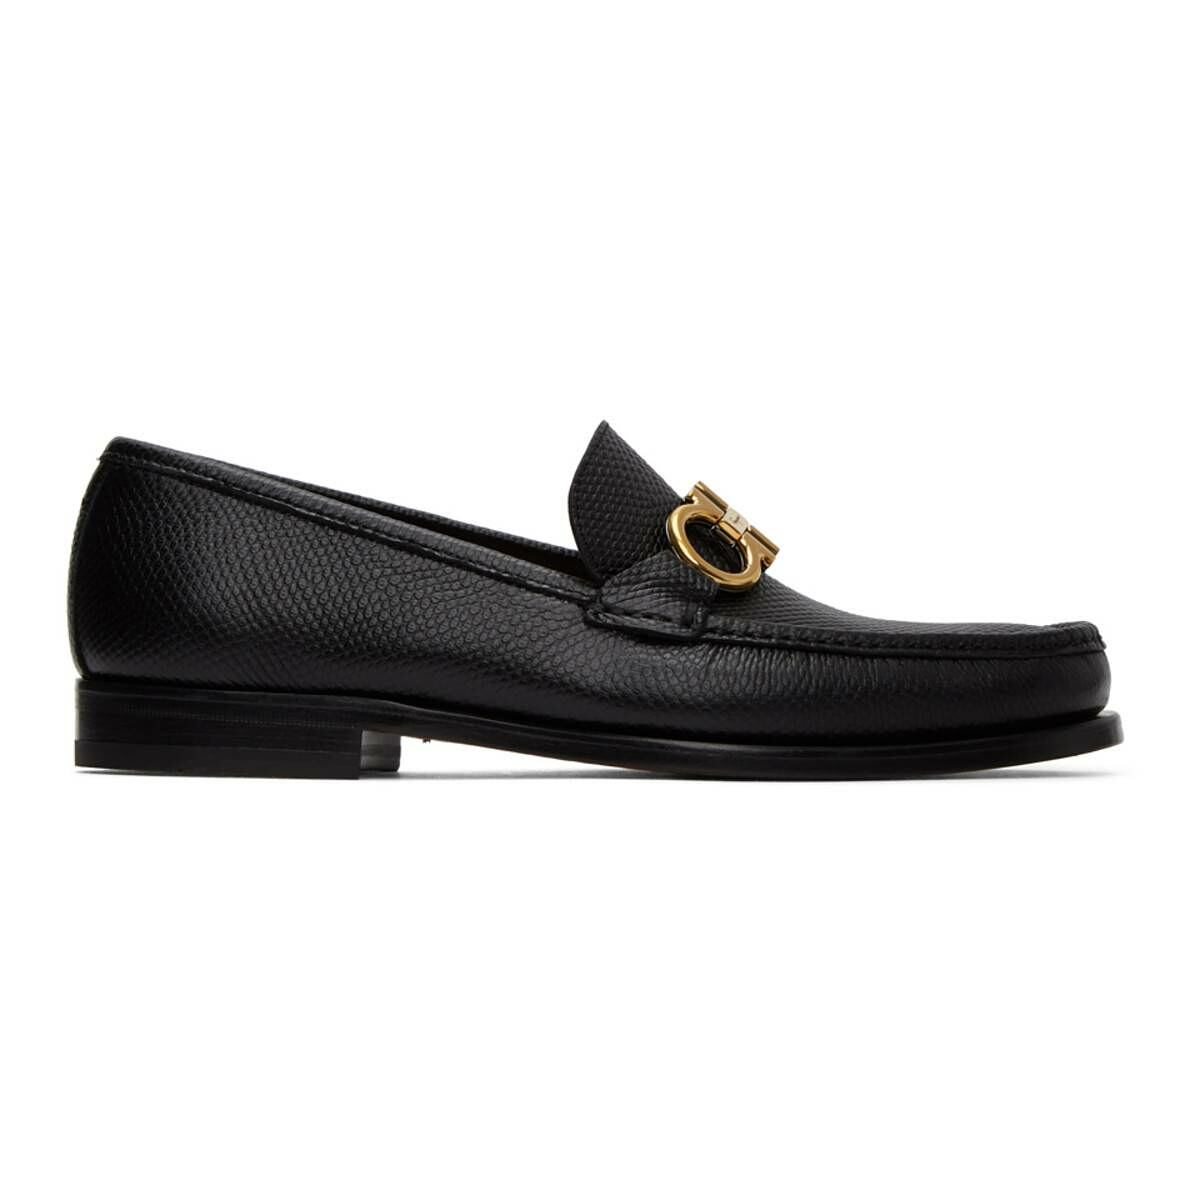 Salvatore Ferragamo Black Rolo 10 Loafers Ssense USA MEN Men SHOES Mens LOAFERS